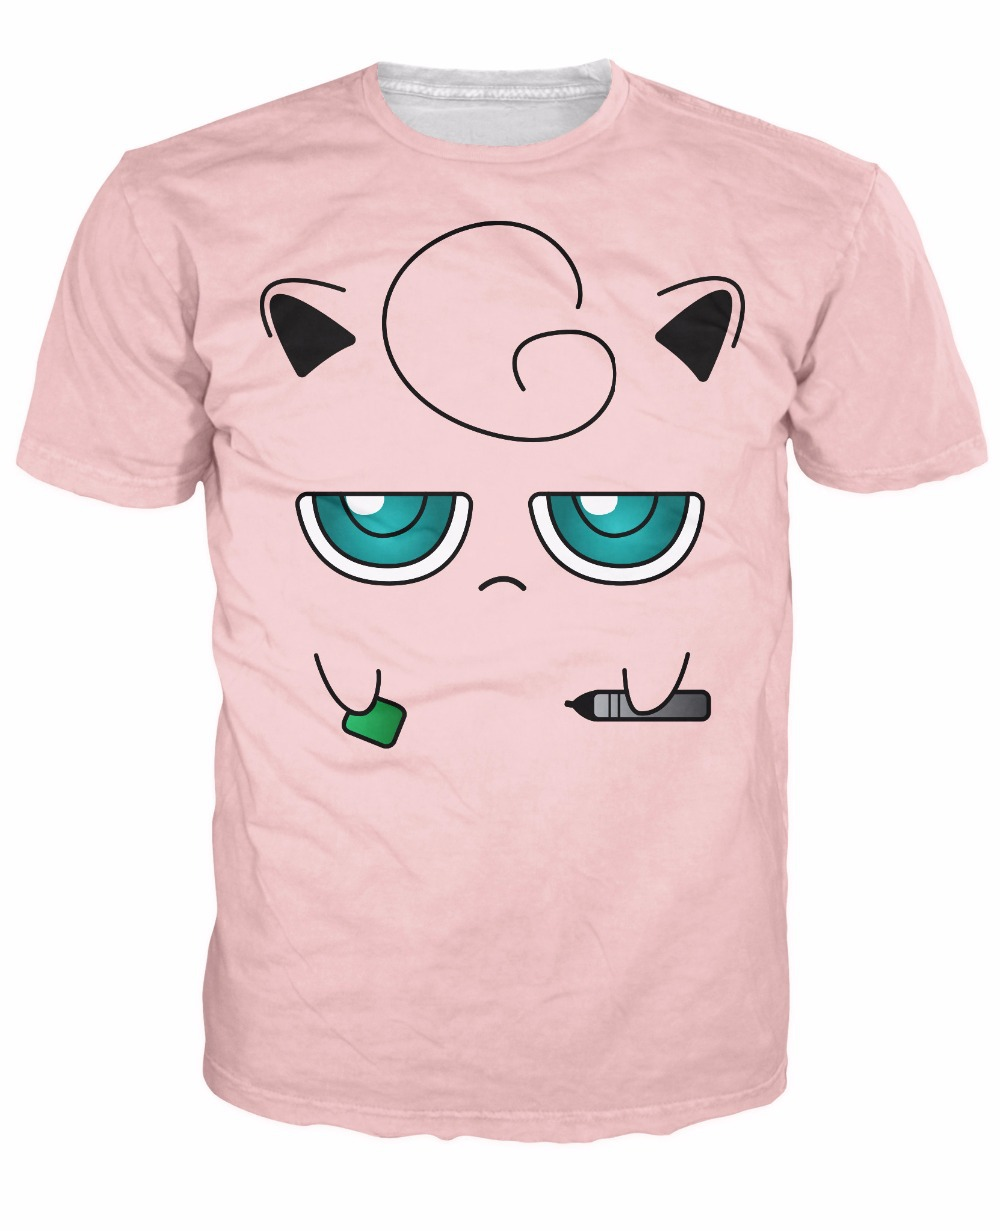 Jigglypuff Face T-Shirt Sexy fairy-type Pokemon Characters t shirt Casual tee Summer fashion clothing tops for men S-5XL R771 image